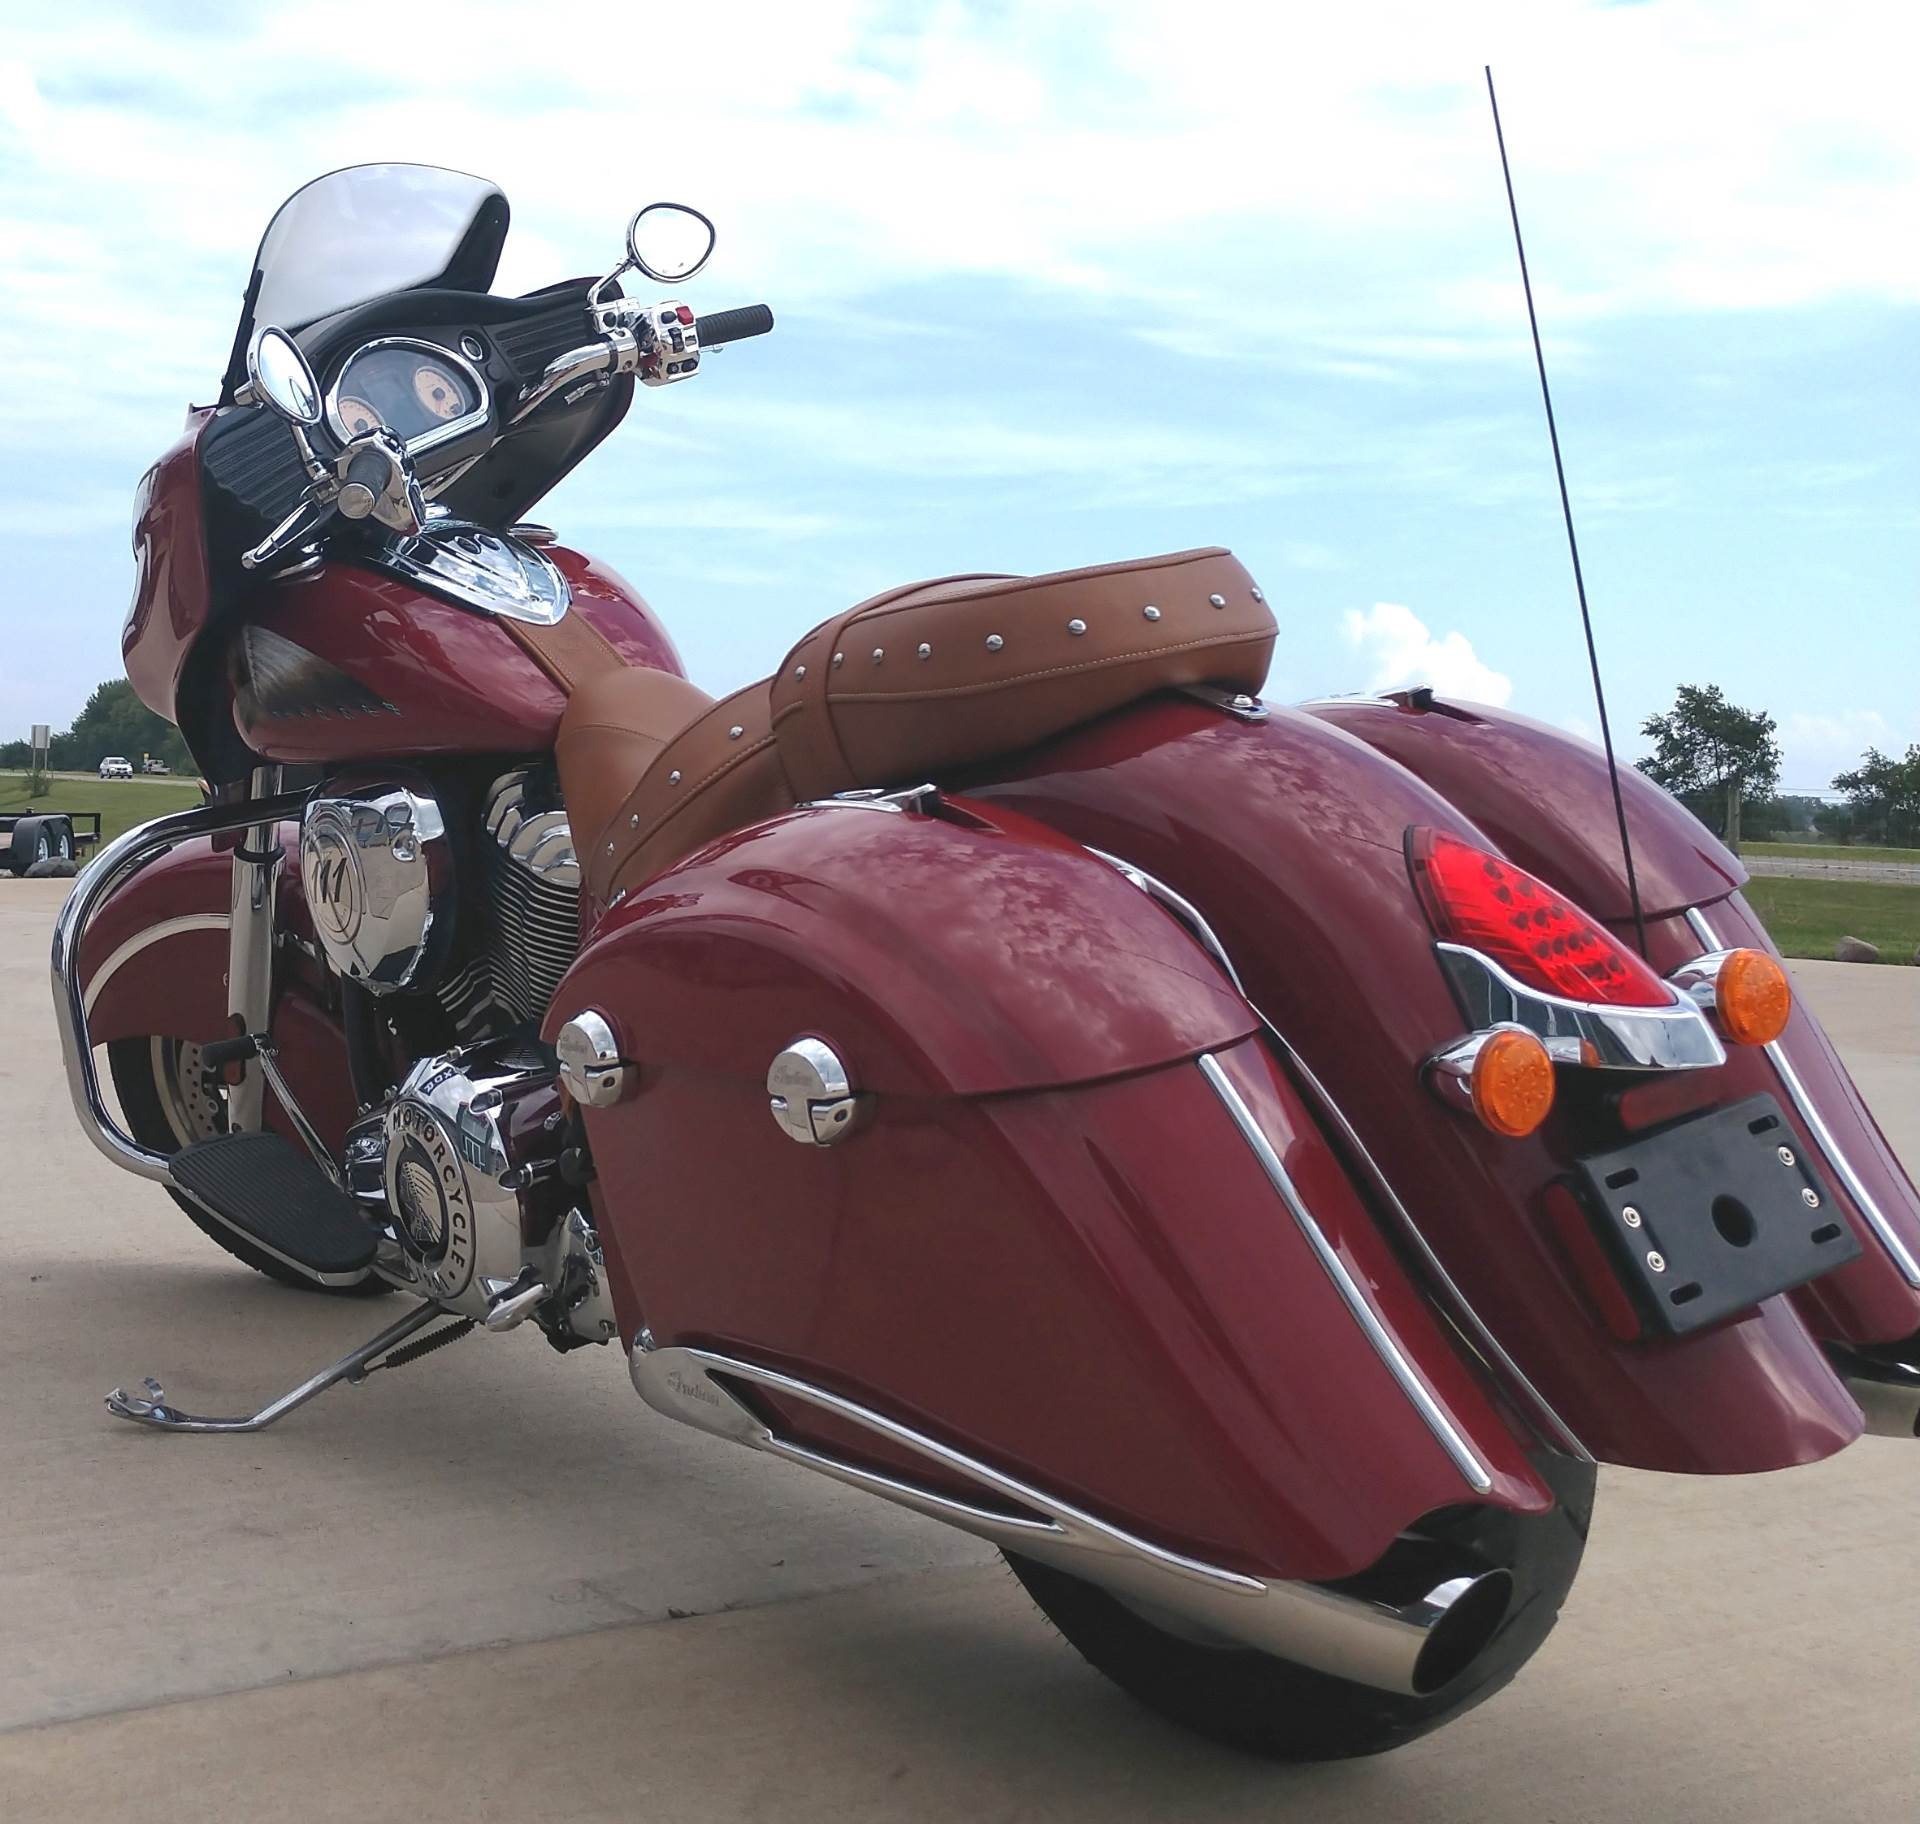 2014 Indian Chieftain™ in Ottumwa, Iowa - Photo 10